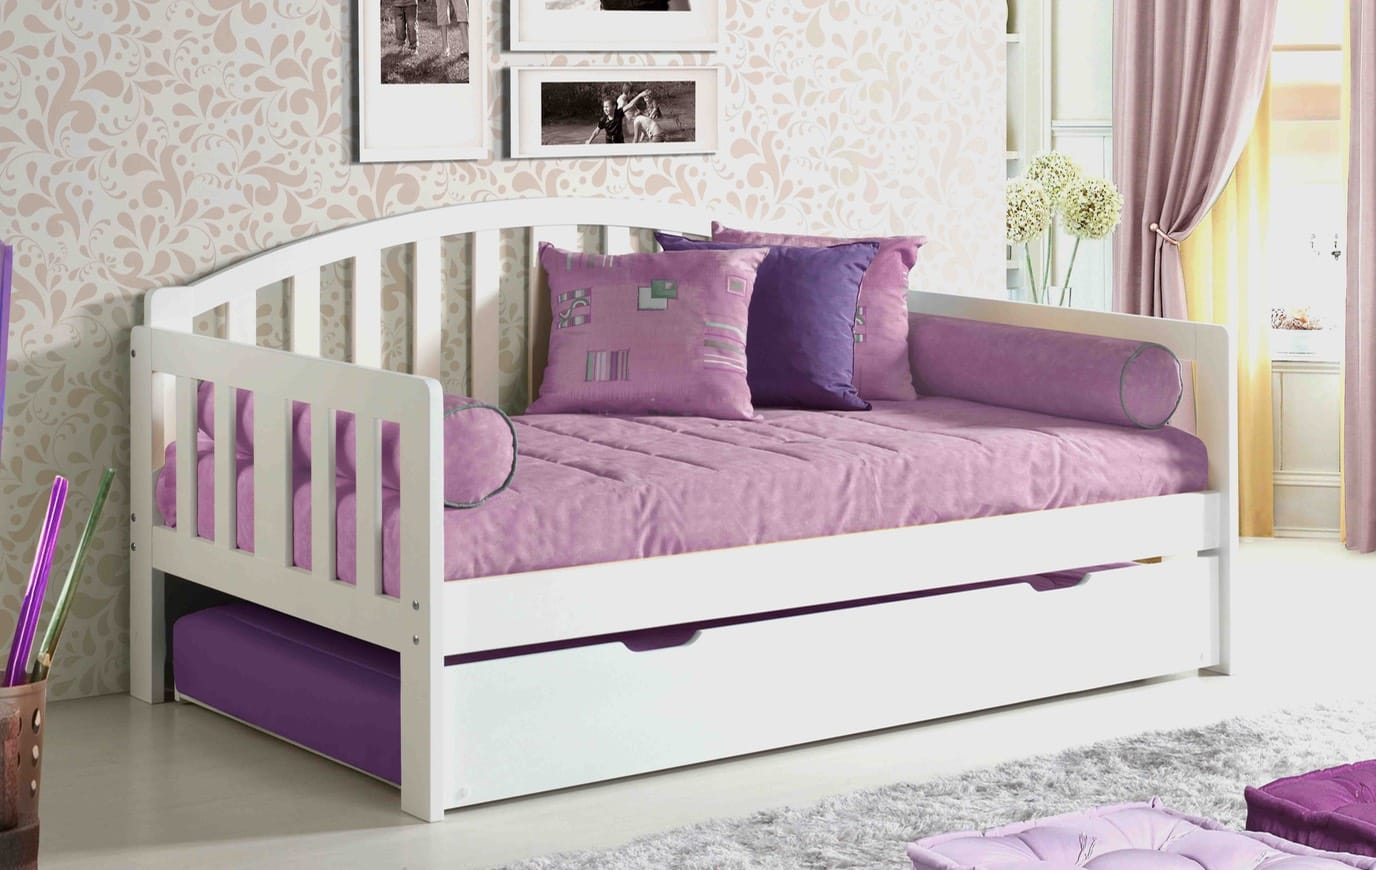 Day Bed.Cottage Day Bed White By Innovations